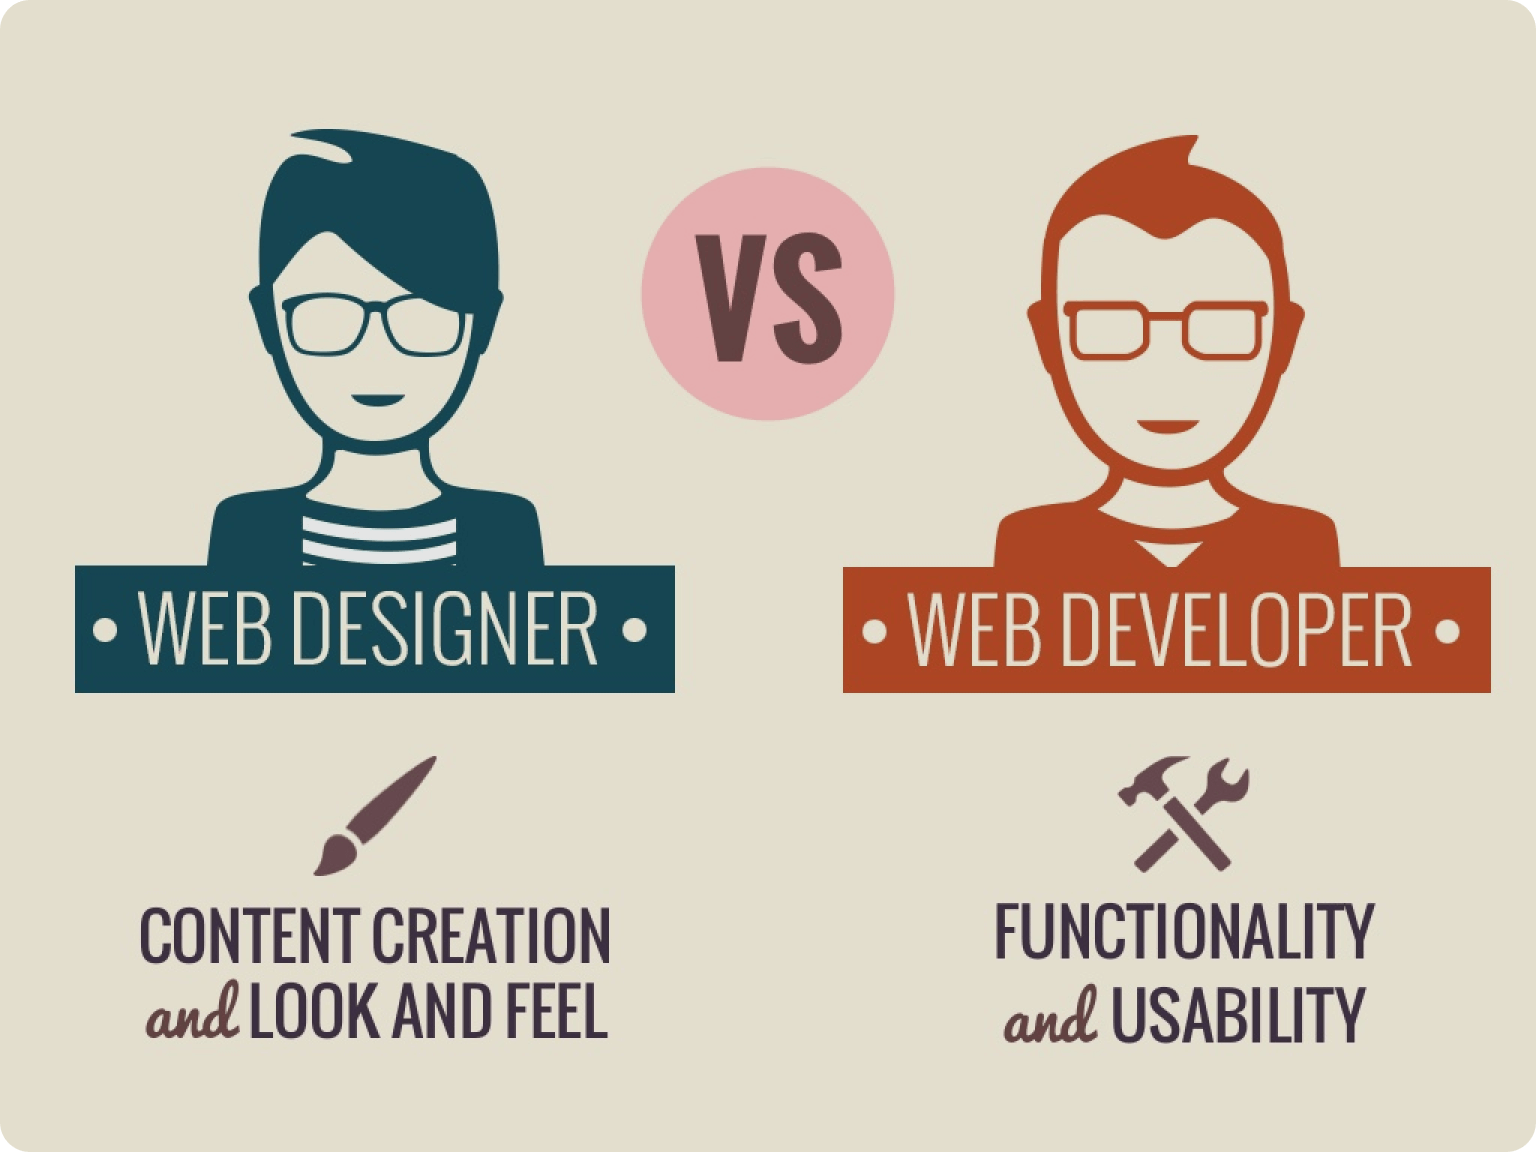 Simple-definition-of-web-designers-and-developers-which-what-different-from-what